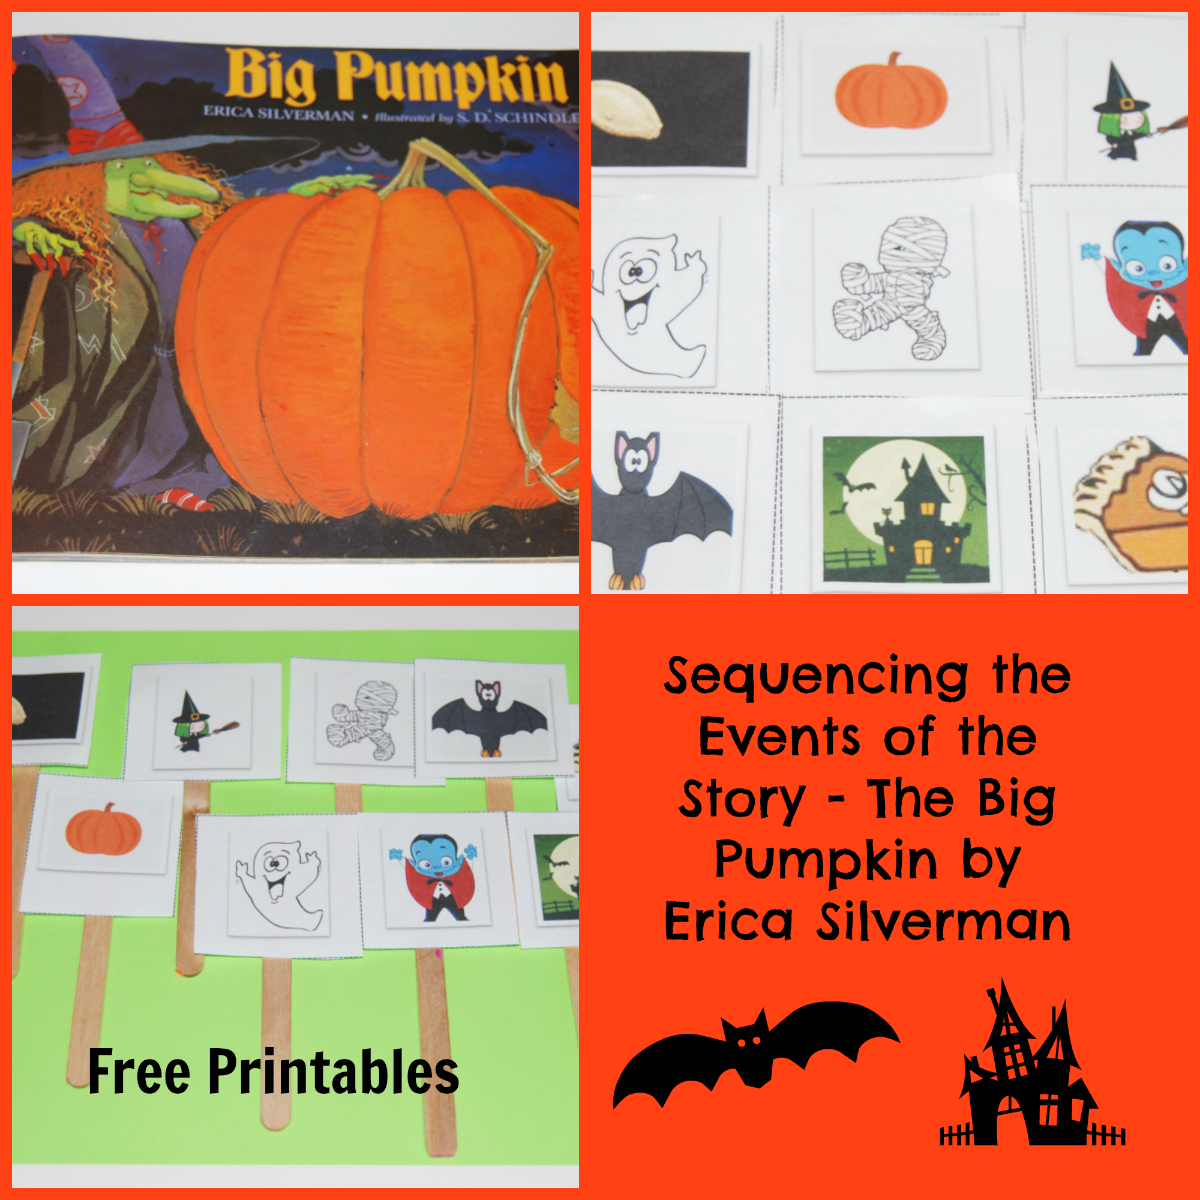 the-big-pumpkin-free-sequencing-activities-for-preschool